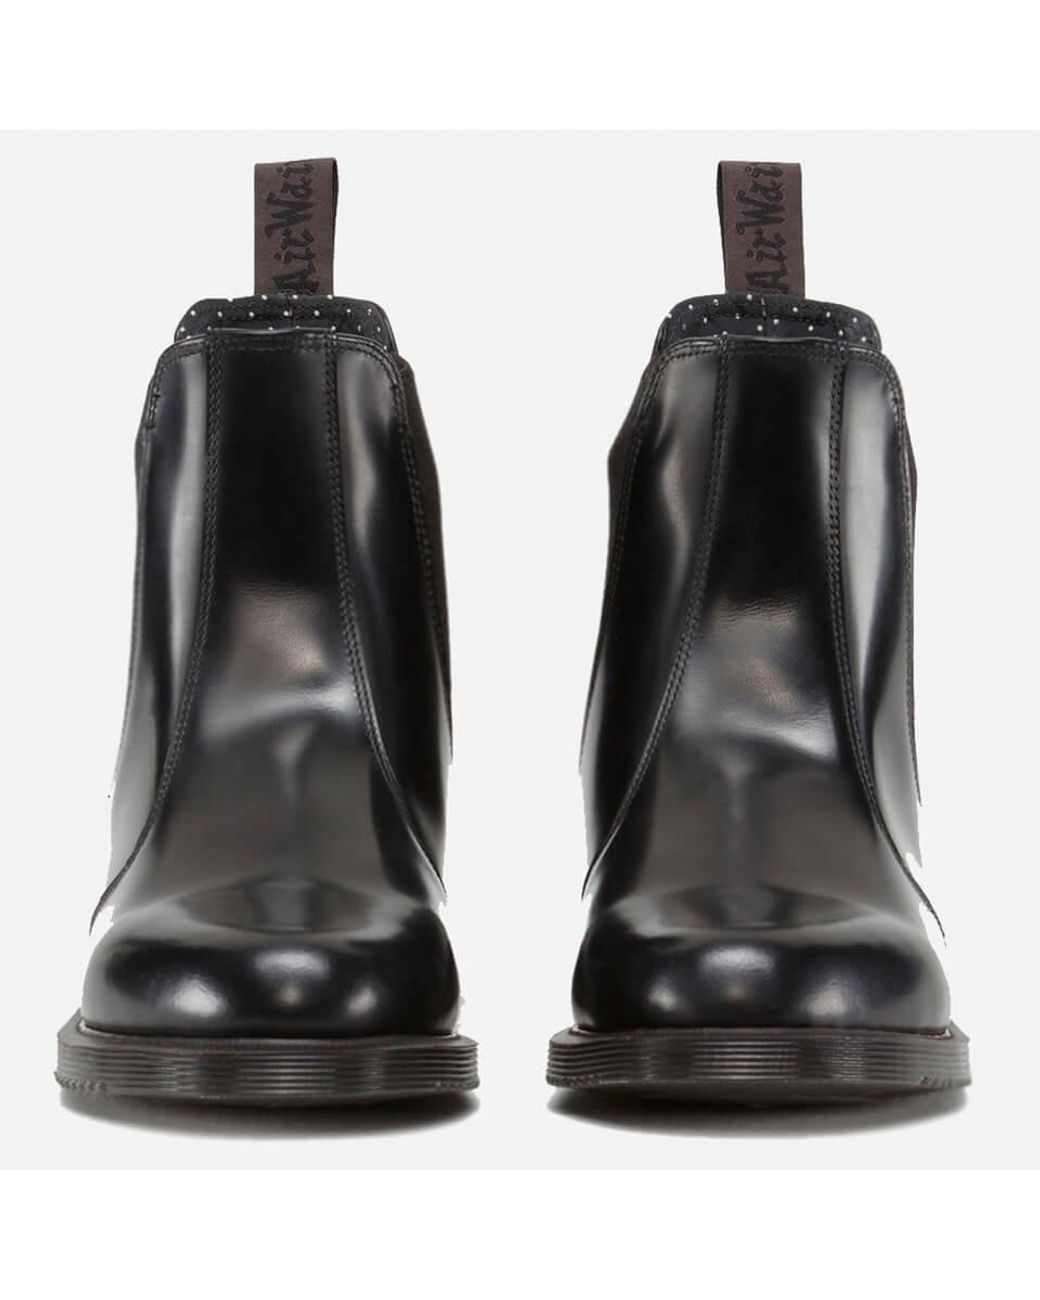 Leather Black Flora DrMartens Polished Smooth Chelsea Lyst Boots In KJT5uF1lc3